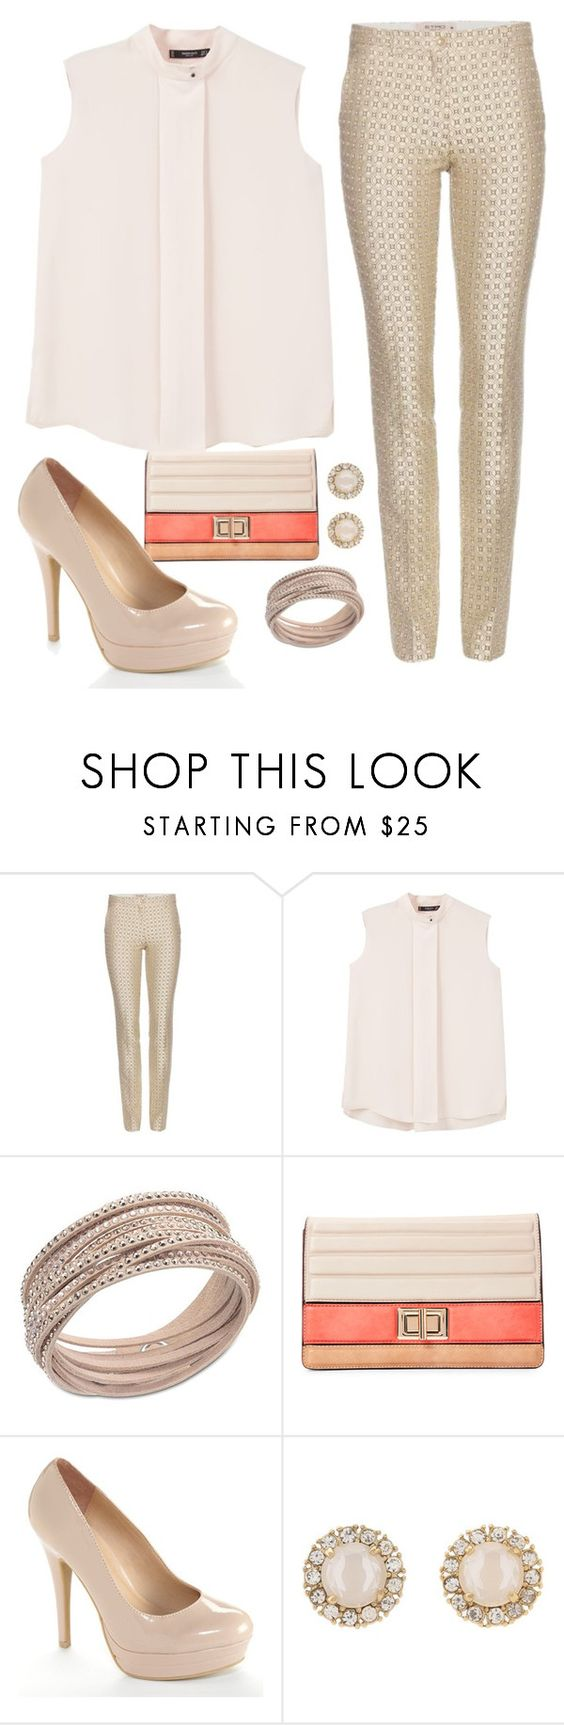 """""""nude"""" by fernanda-marfil ❤ liked on Polyvore featuring Etro, MANGO, Swarovski, Melie Bianco, LC Lauren Conrad and Kate Spade"""